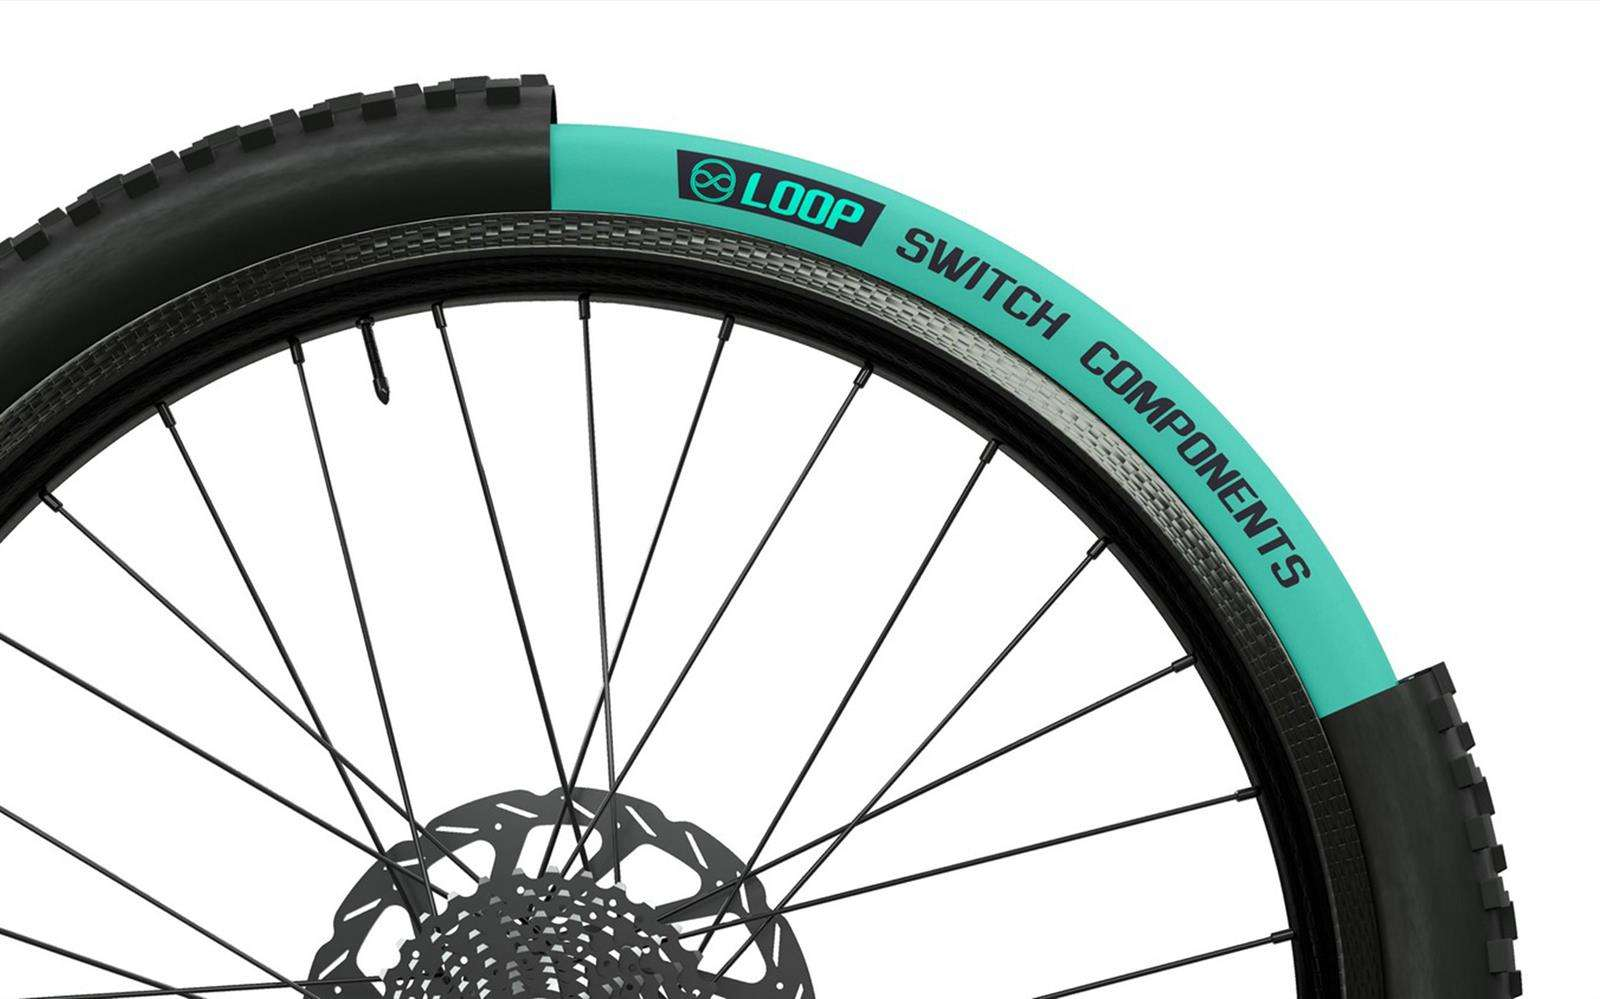 LOOP - Improve your tubeless performance